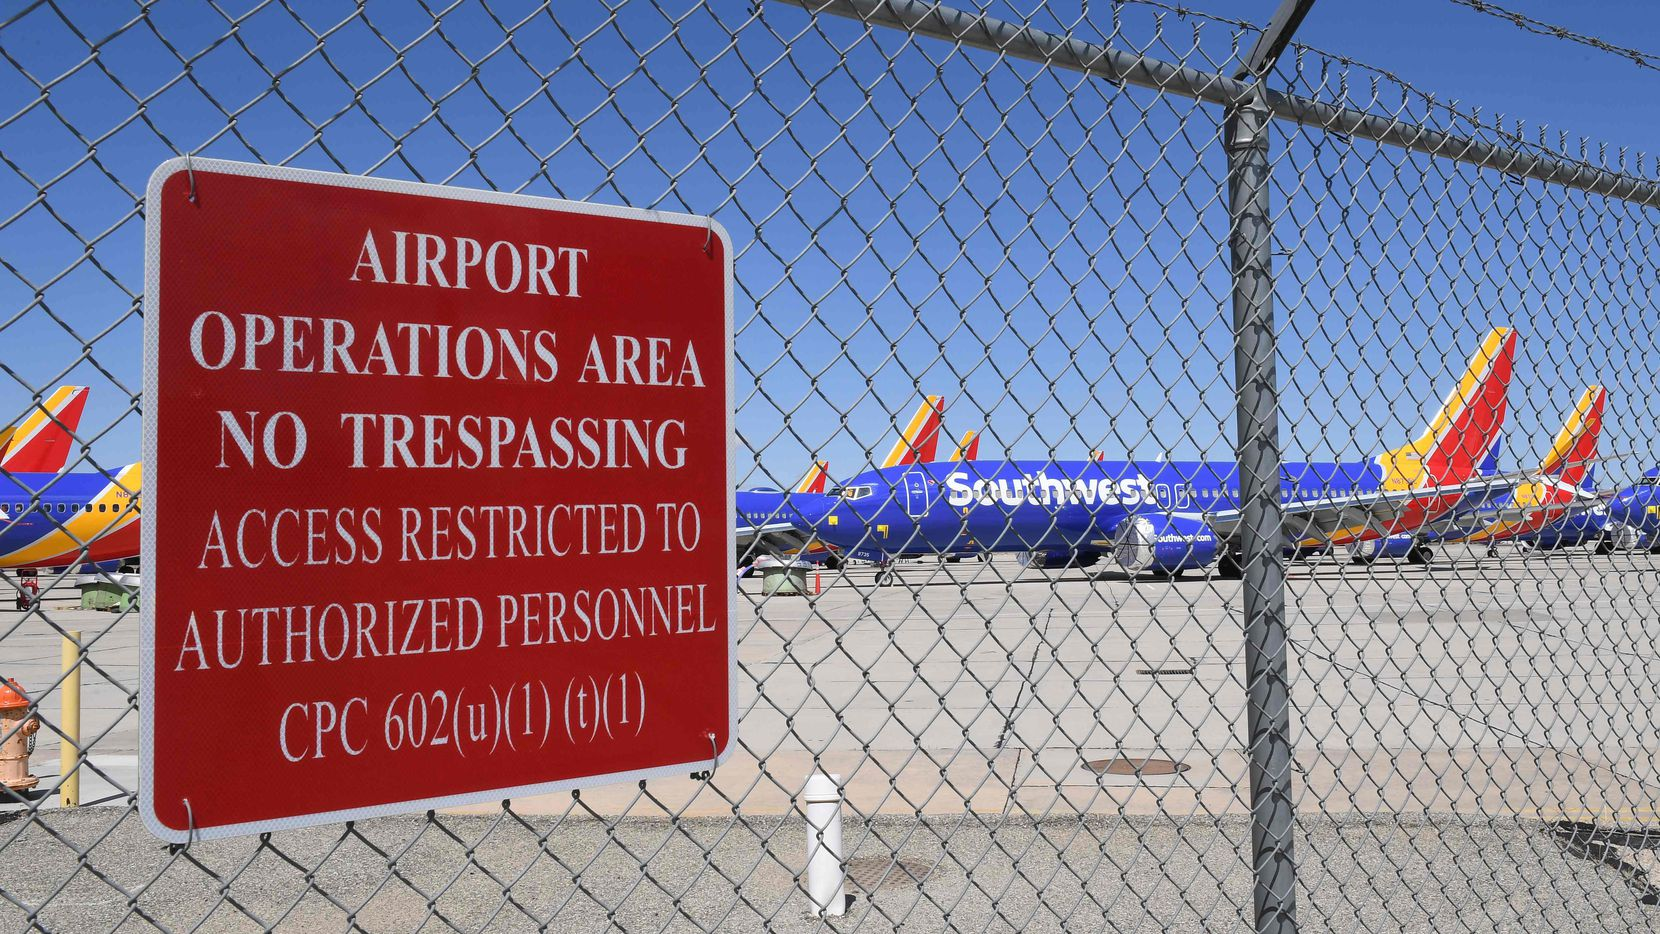 Southwest Airlines' Boeing 737 Max aircraft were parked on a tarmac in Victorville, Calif., after being grounded 20 months ago.